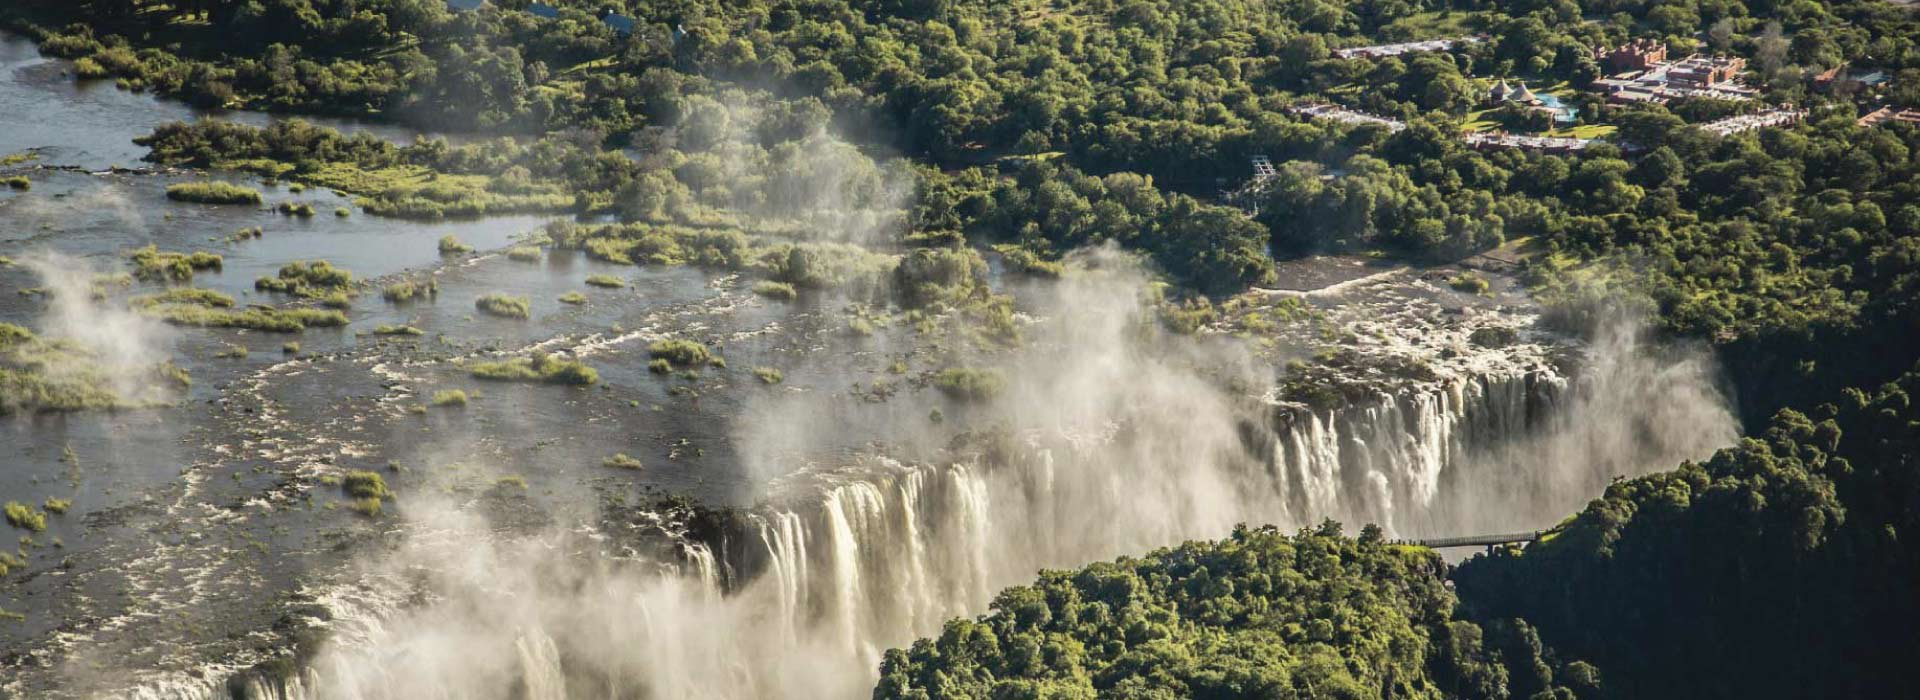 Aerial view of cascading Victoria falls